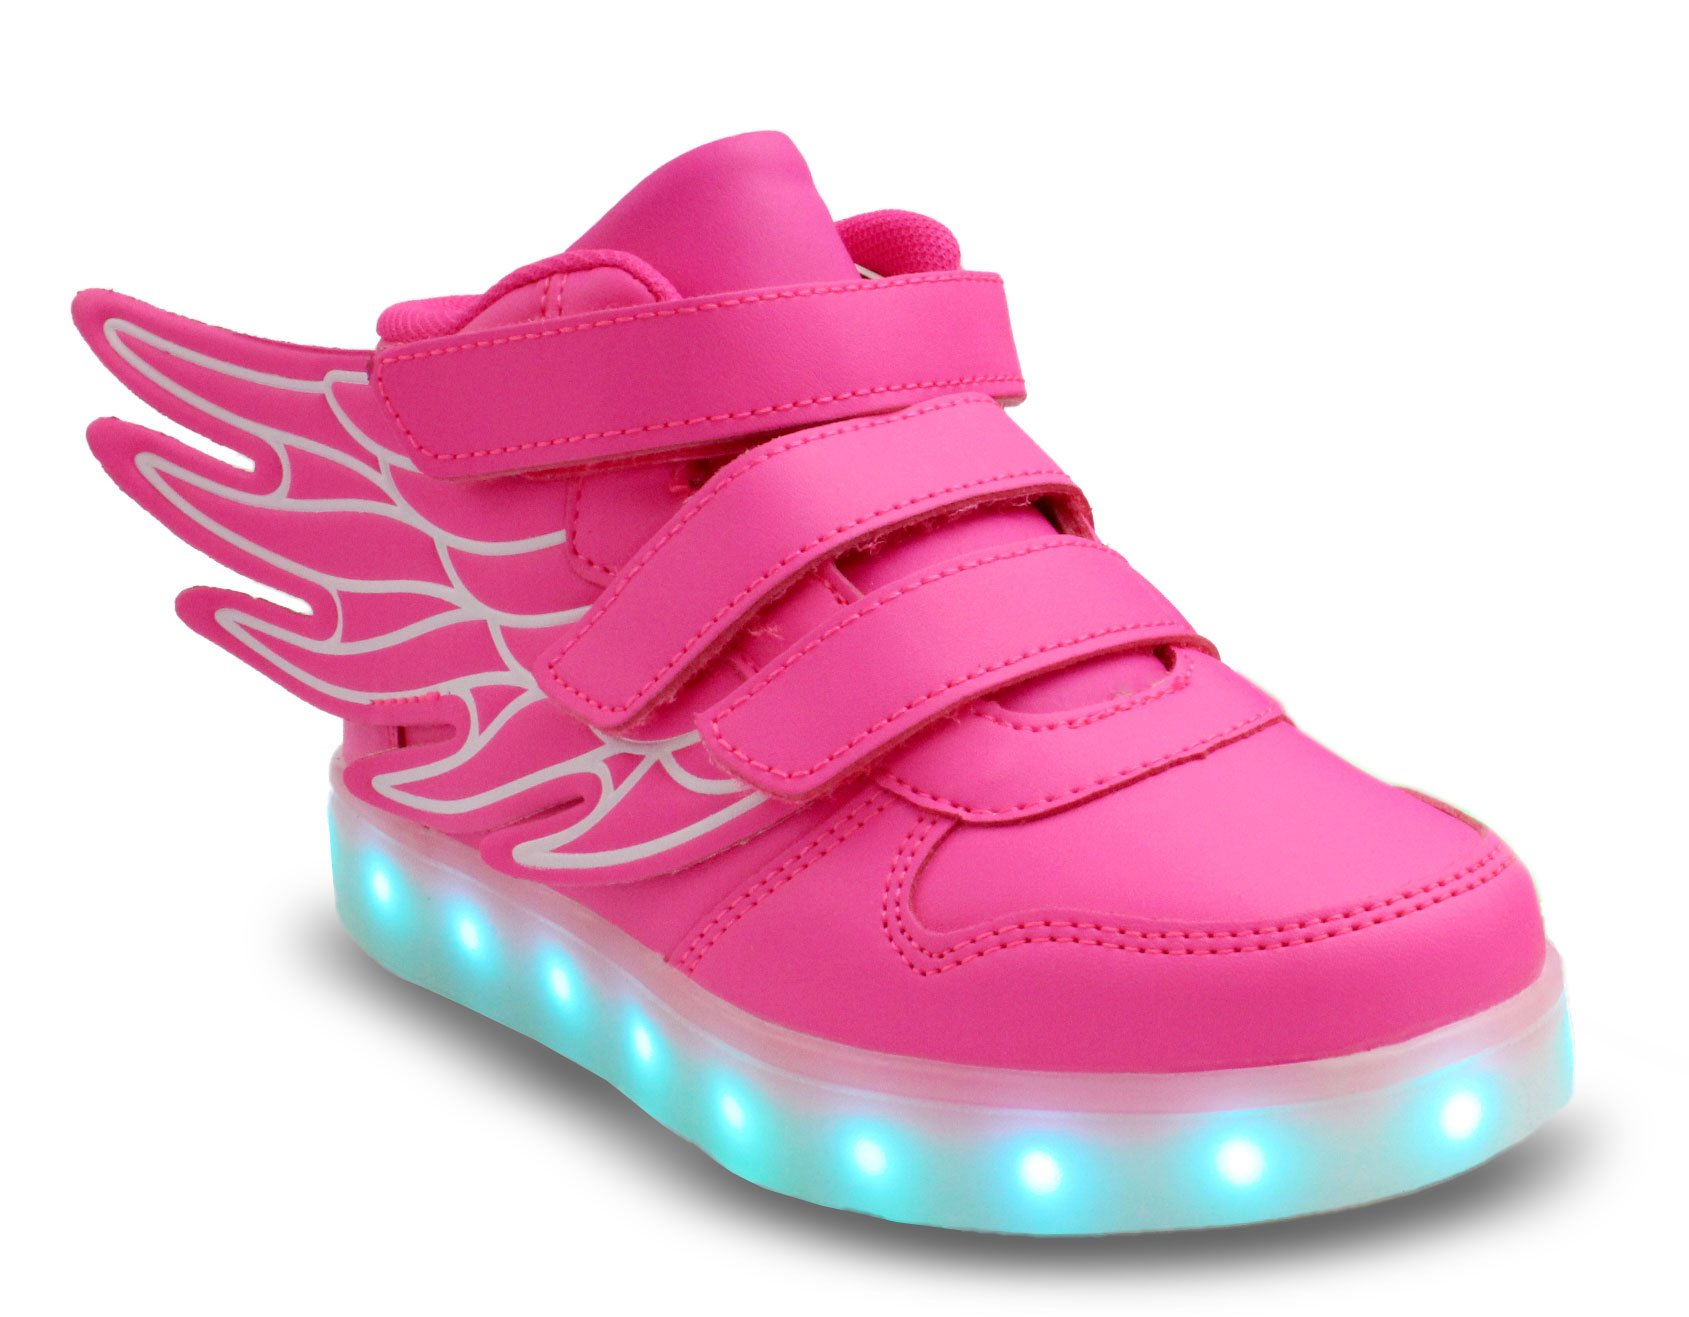 80d312997345 Galleon - Transformania Toys Galaxy LED Shoes Light Up USB Charging High Top  Wings Kids Sneakers (Pink) 3.5